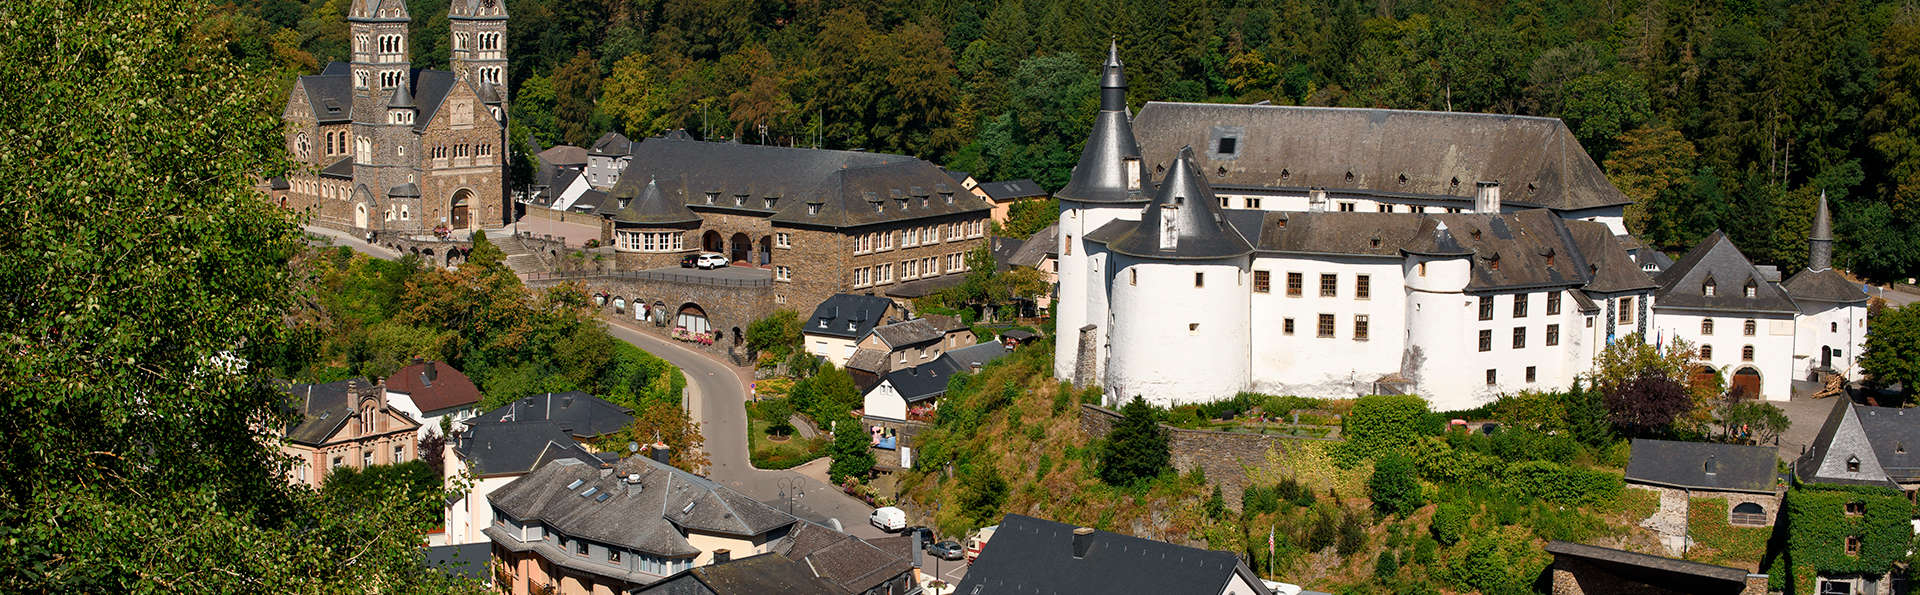 Le clervaux boutique and design hotel 5 clervaux for Designhotel luxemburg